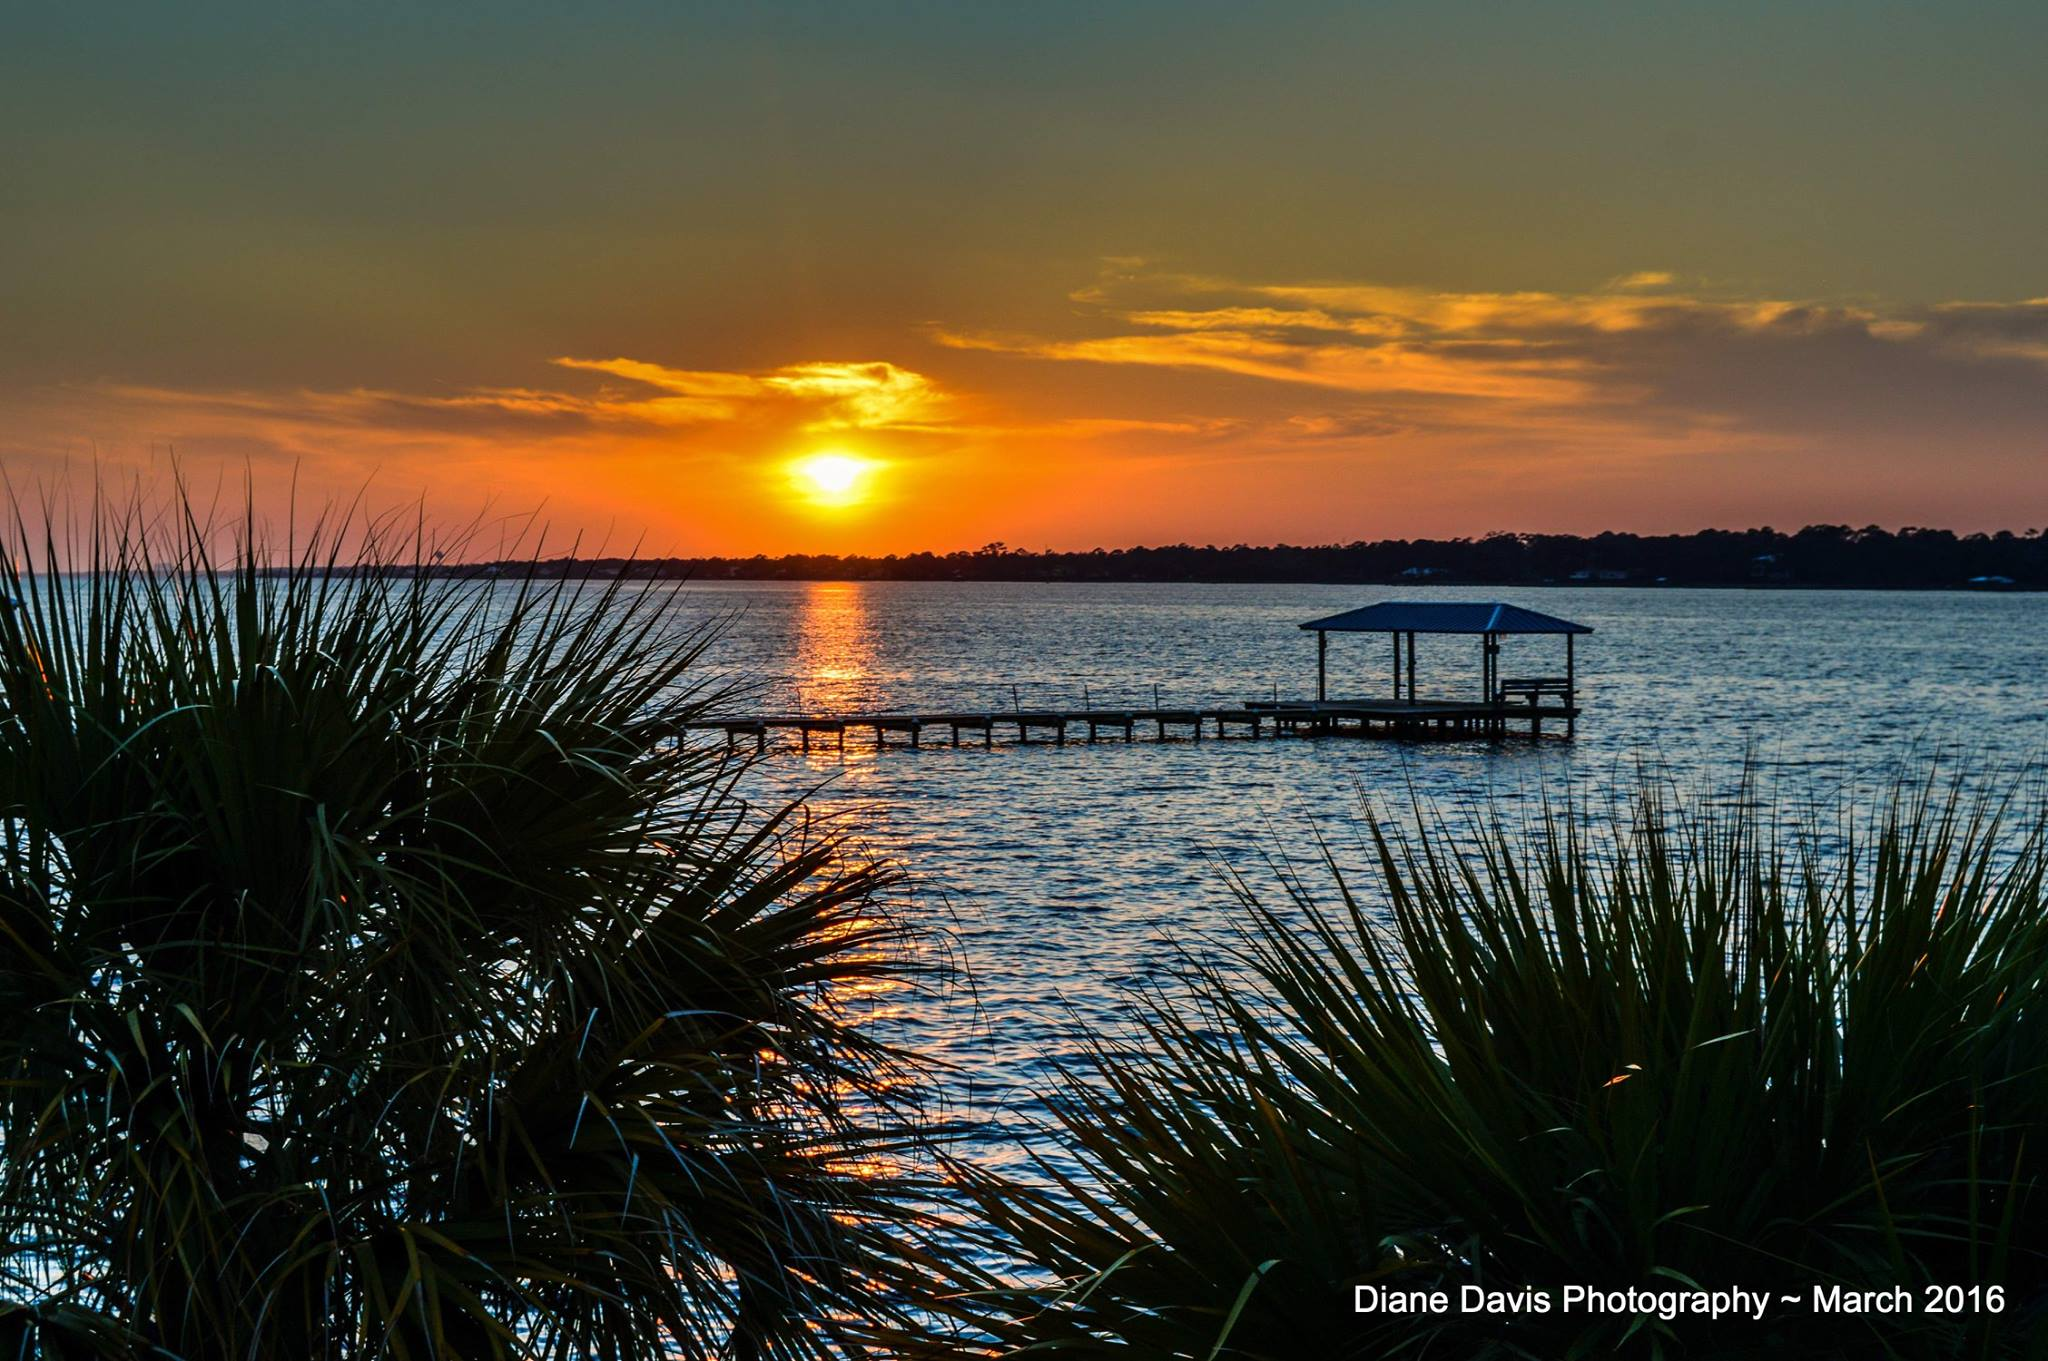 Craft farms homes for sale in gulf shores alabama golf for Craft farms gulf shores al